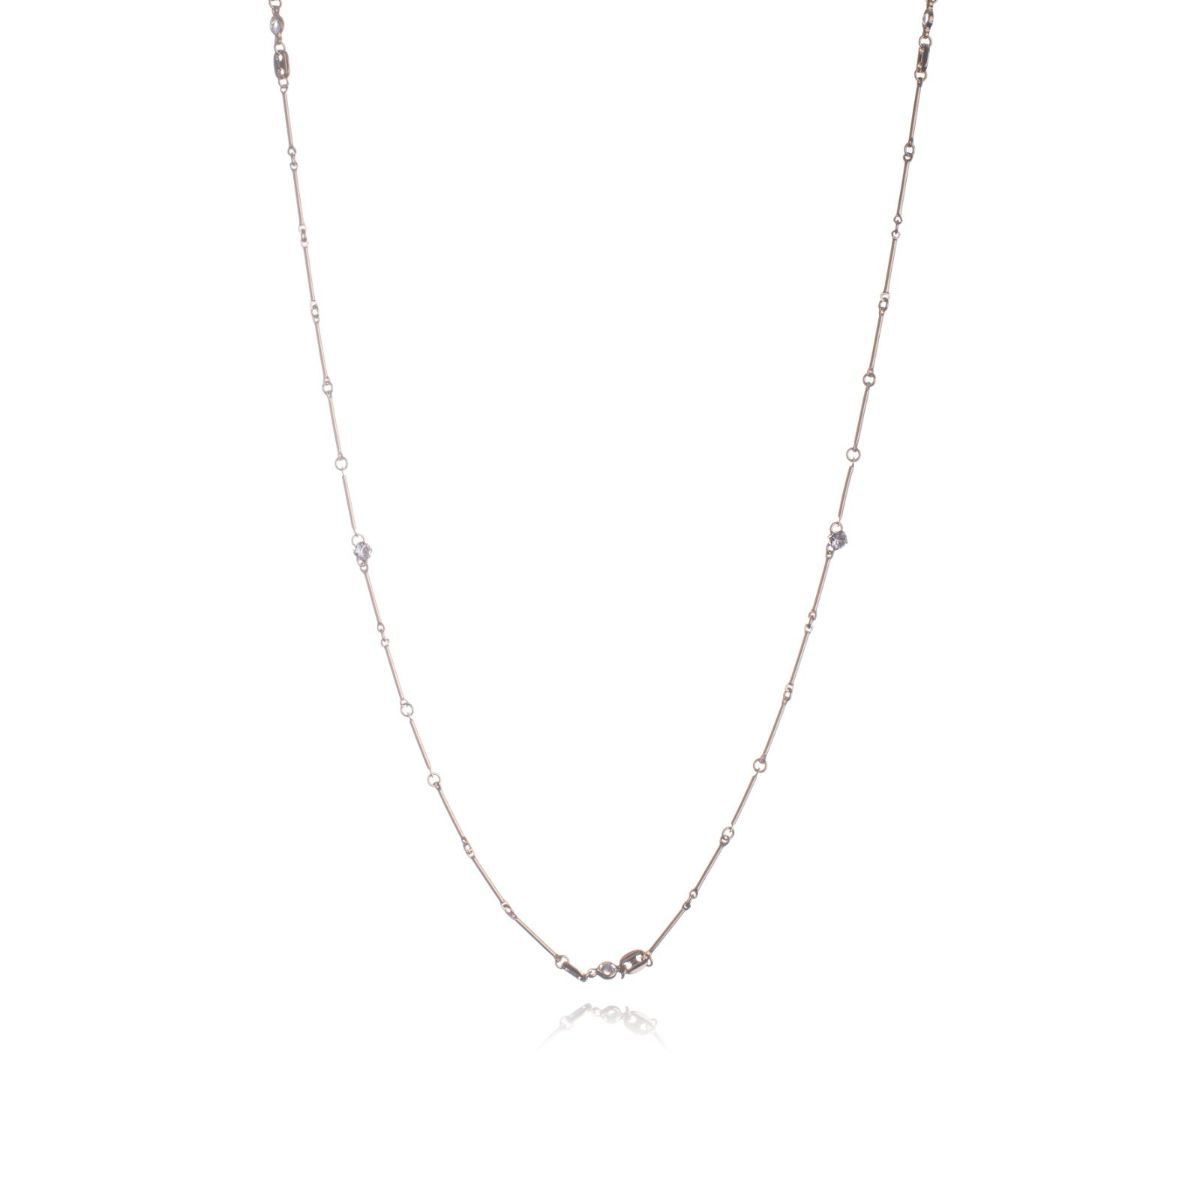 Viena long thin 8 carat gold plated copper necklace with circles and white zircons set